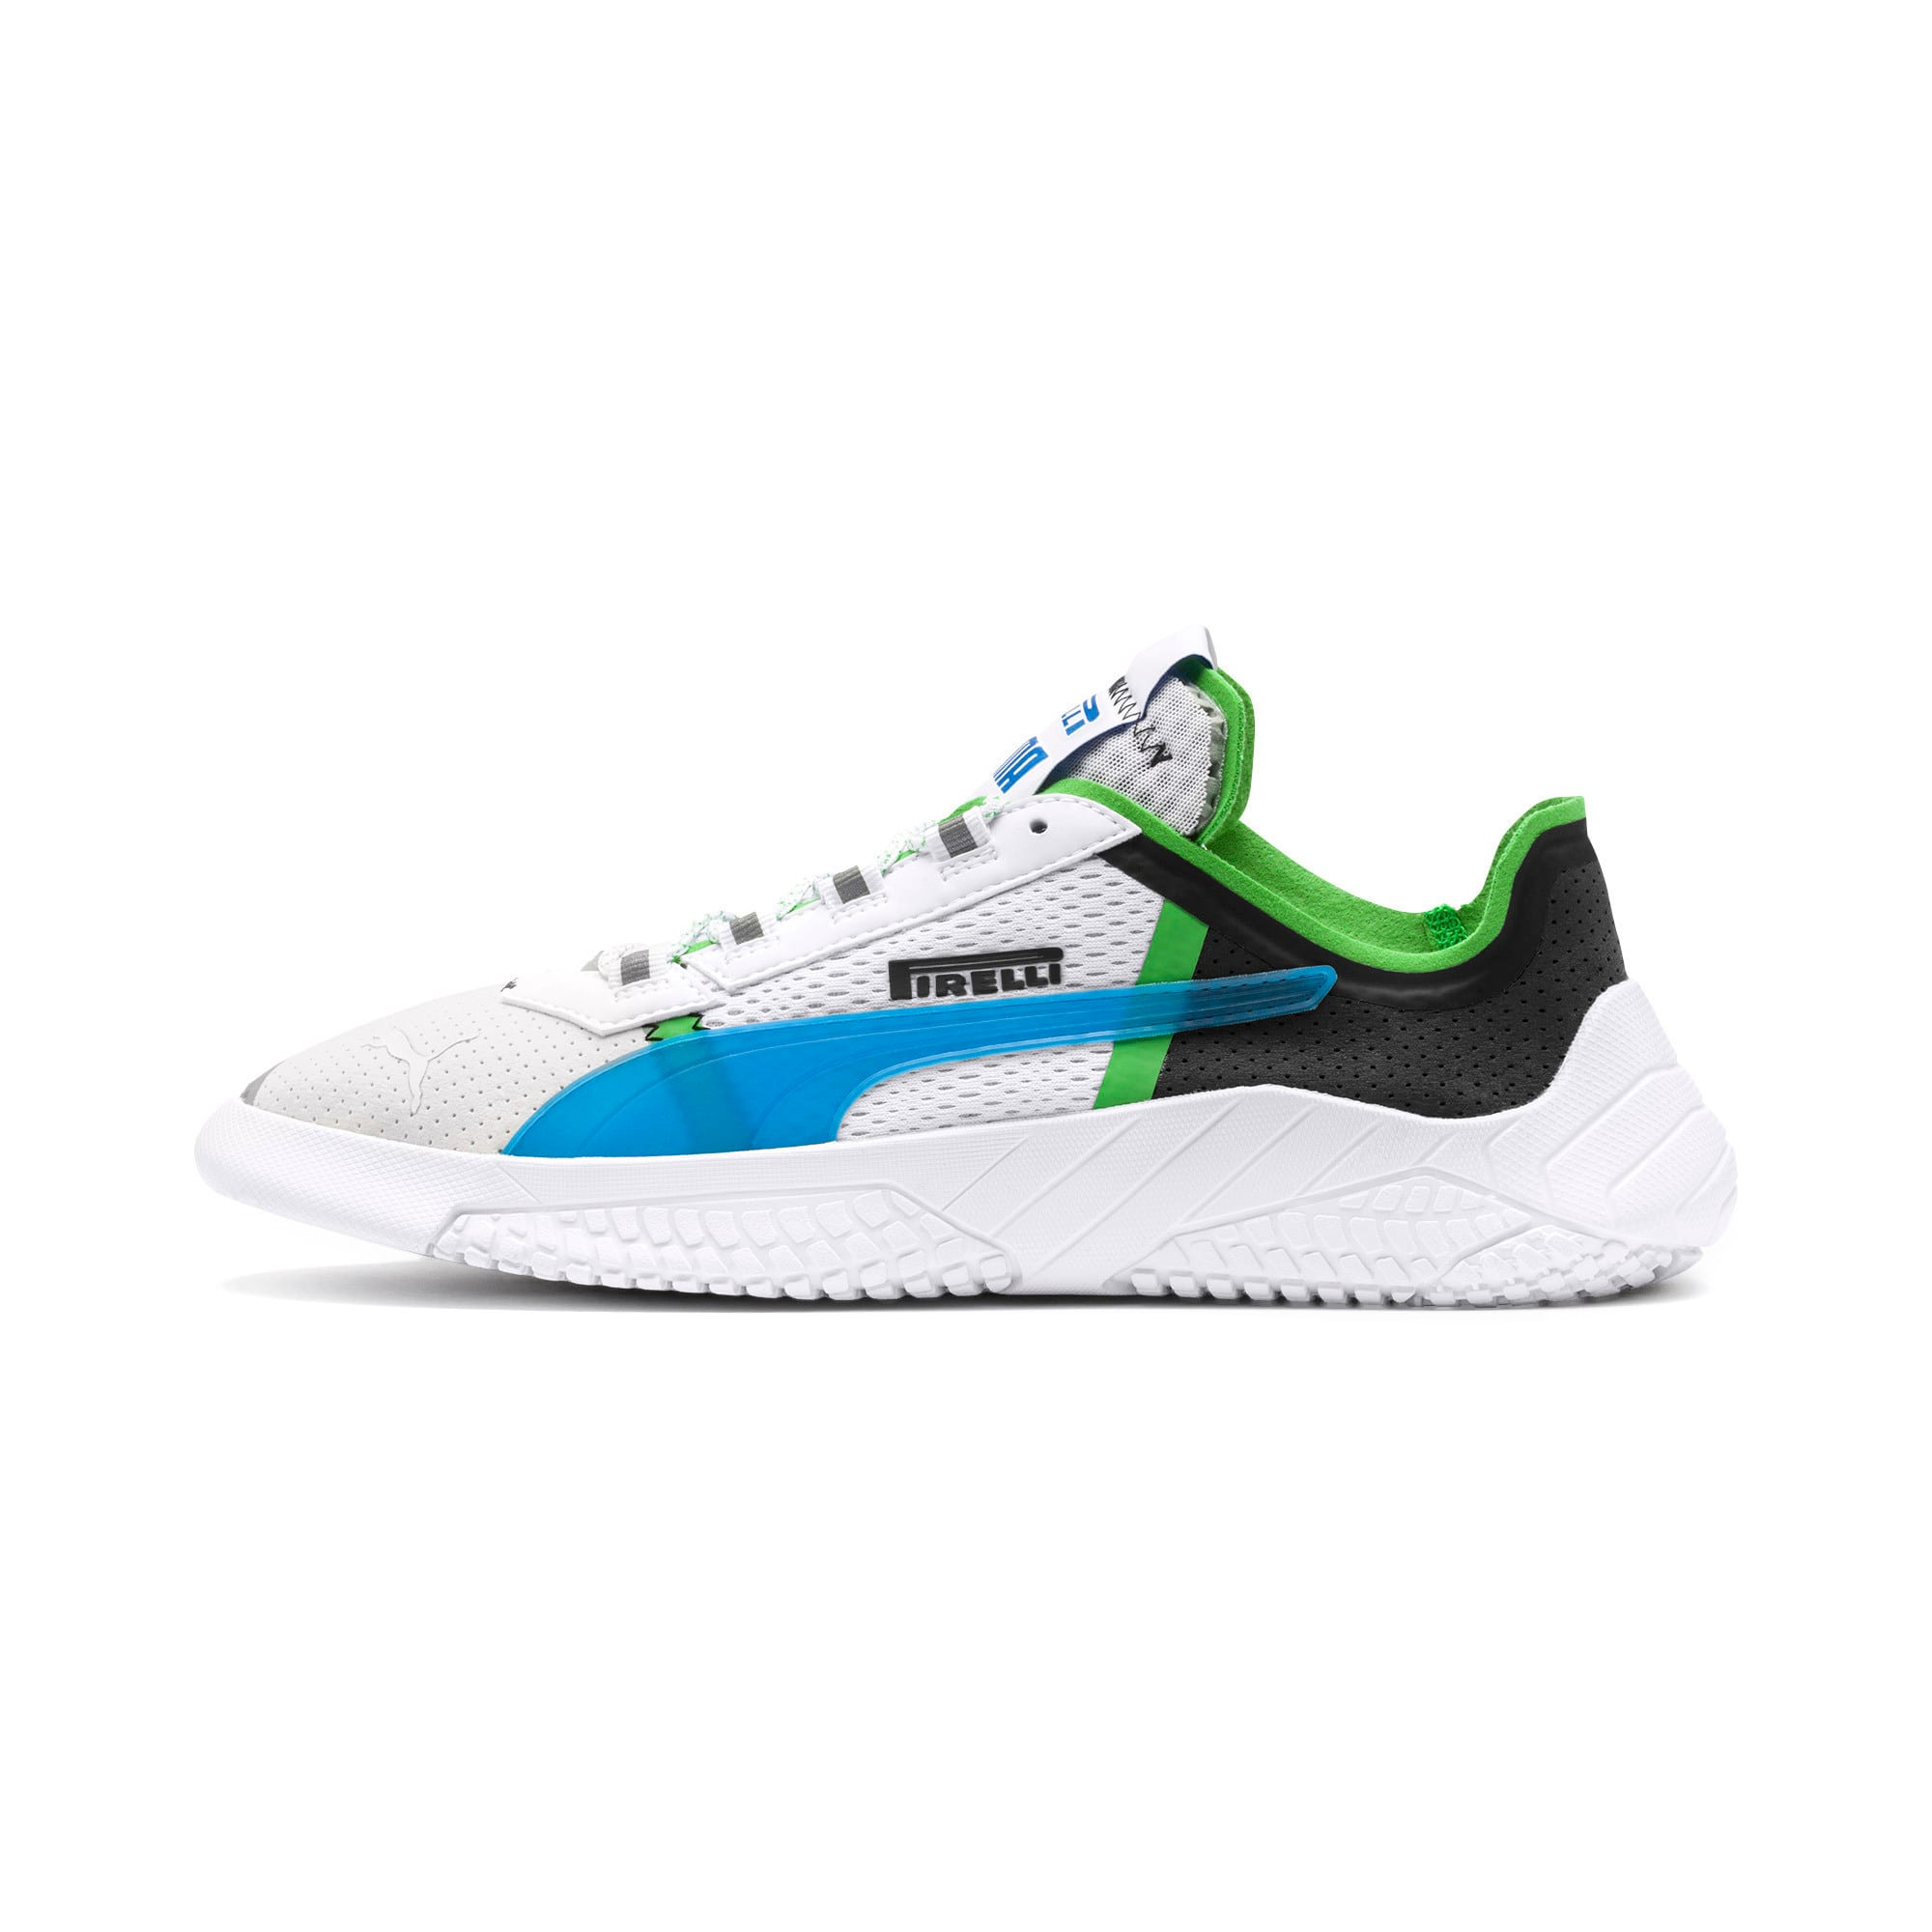 Thumbnail 1 of Pirelli Replicat-X Trainers, White-Black-Classic Green, medium